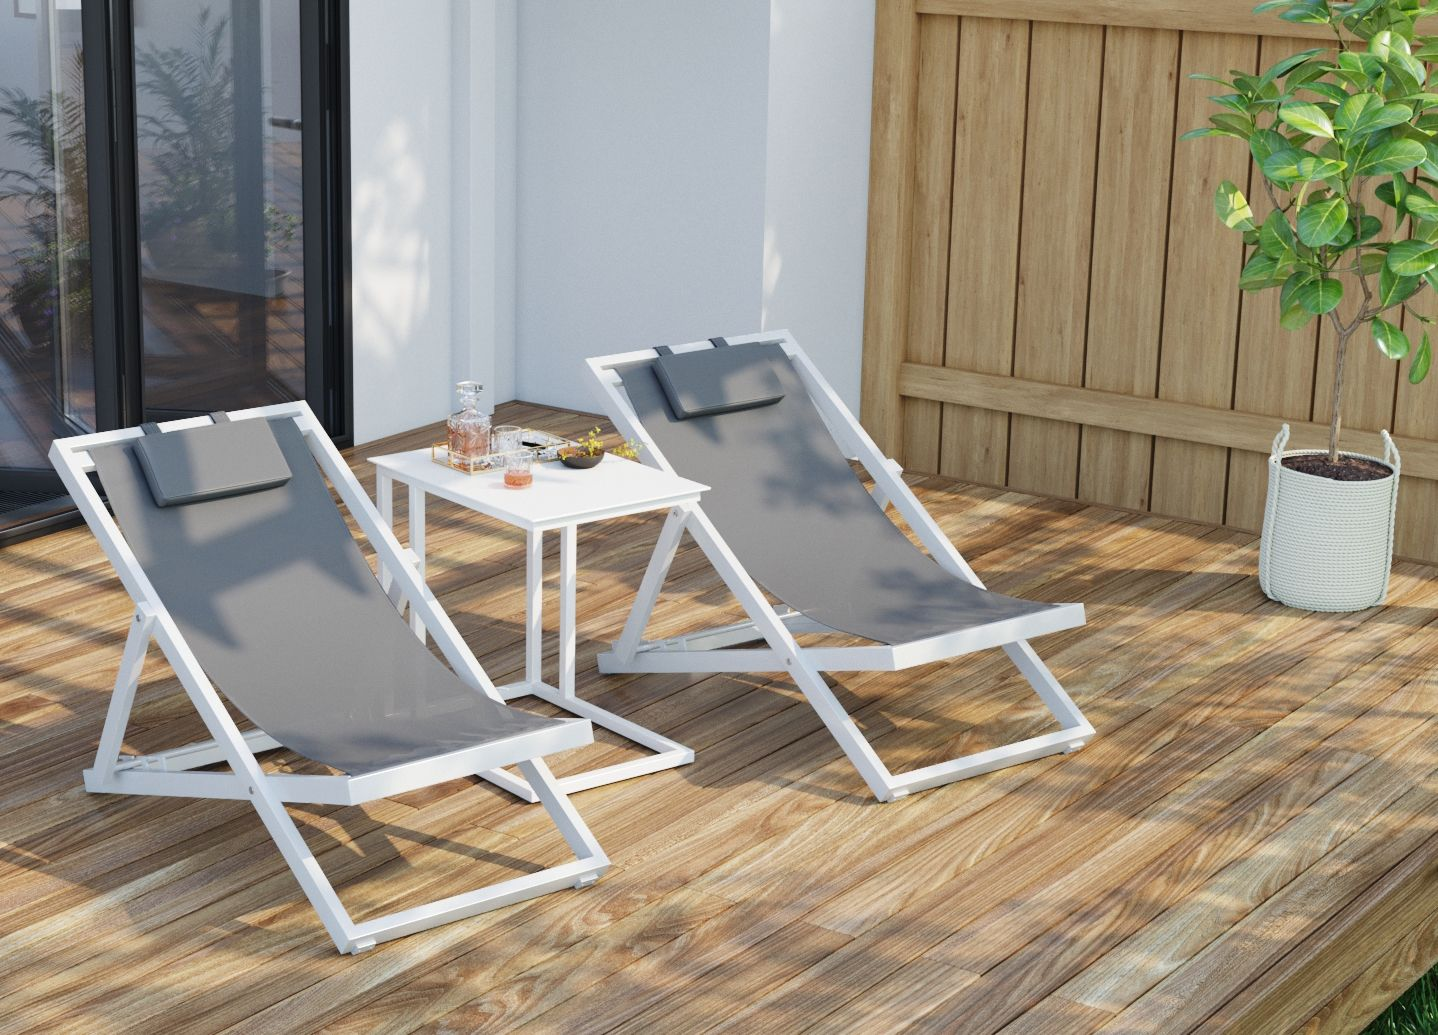 Solana outdoor easy chair offers that easy chilling vibe in your backyard or balcony new